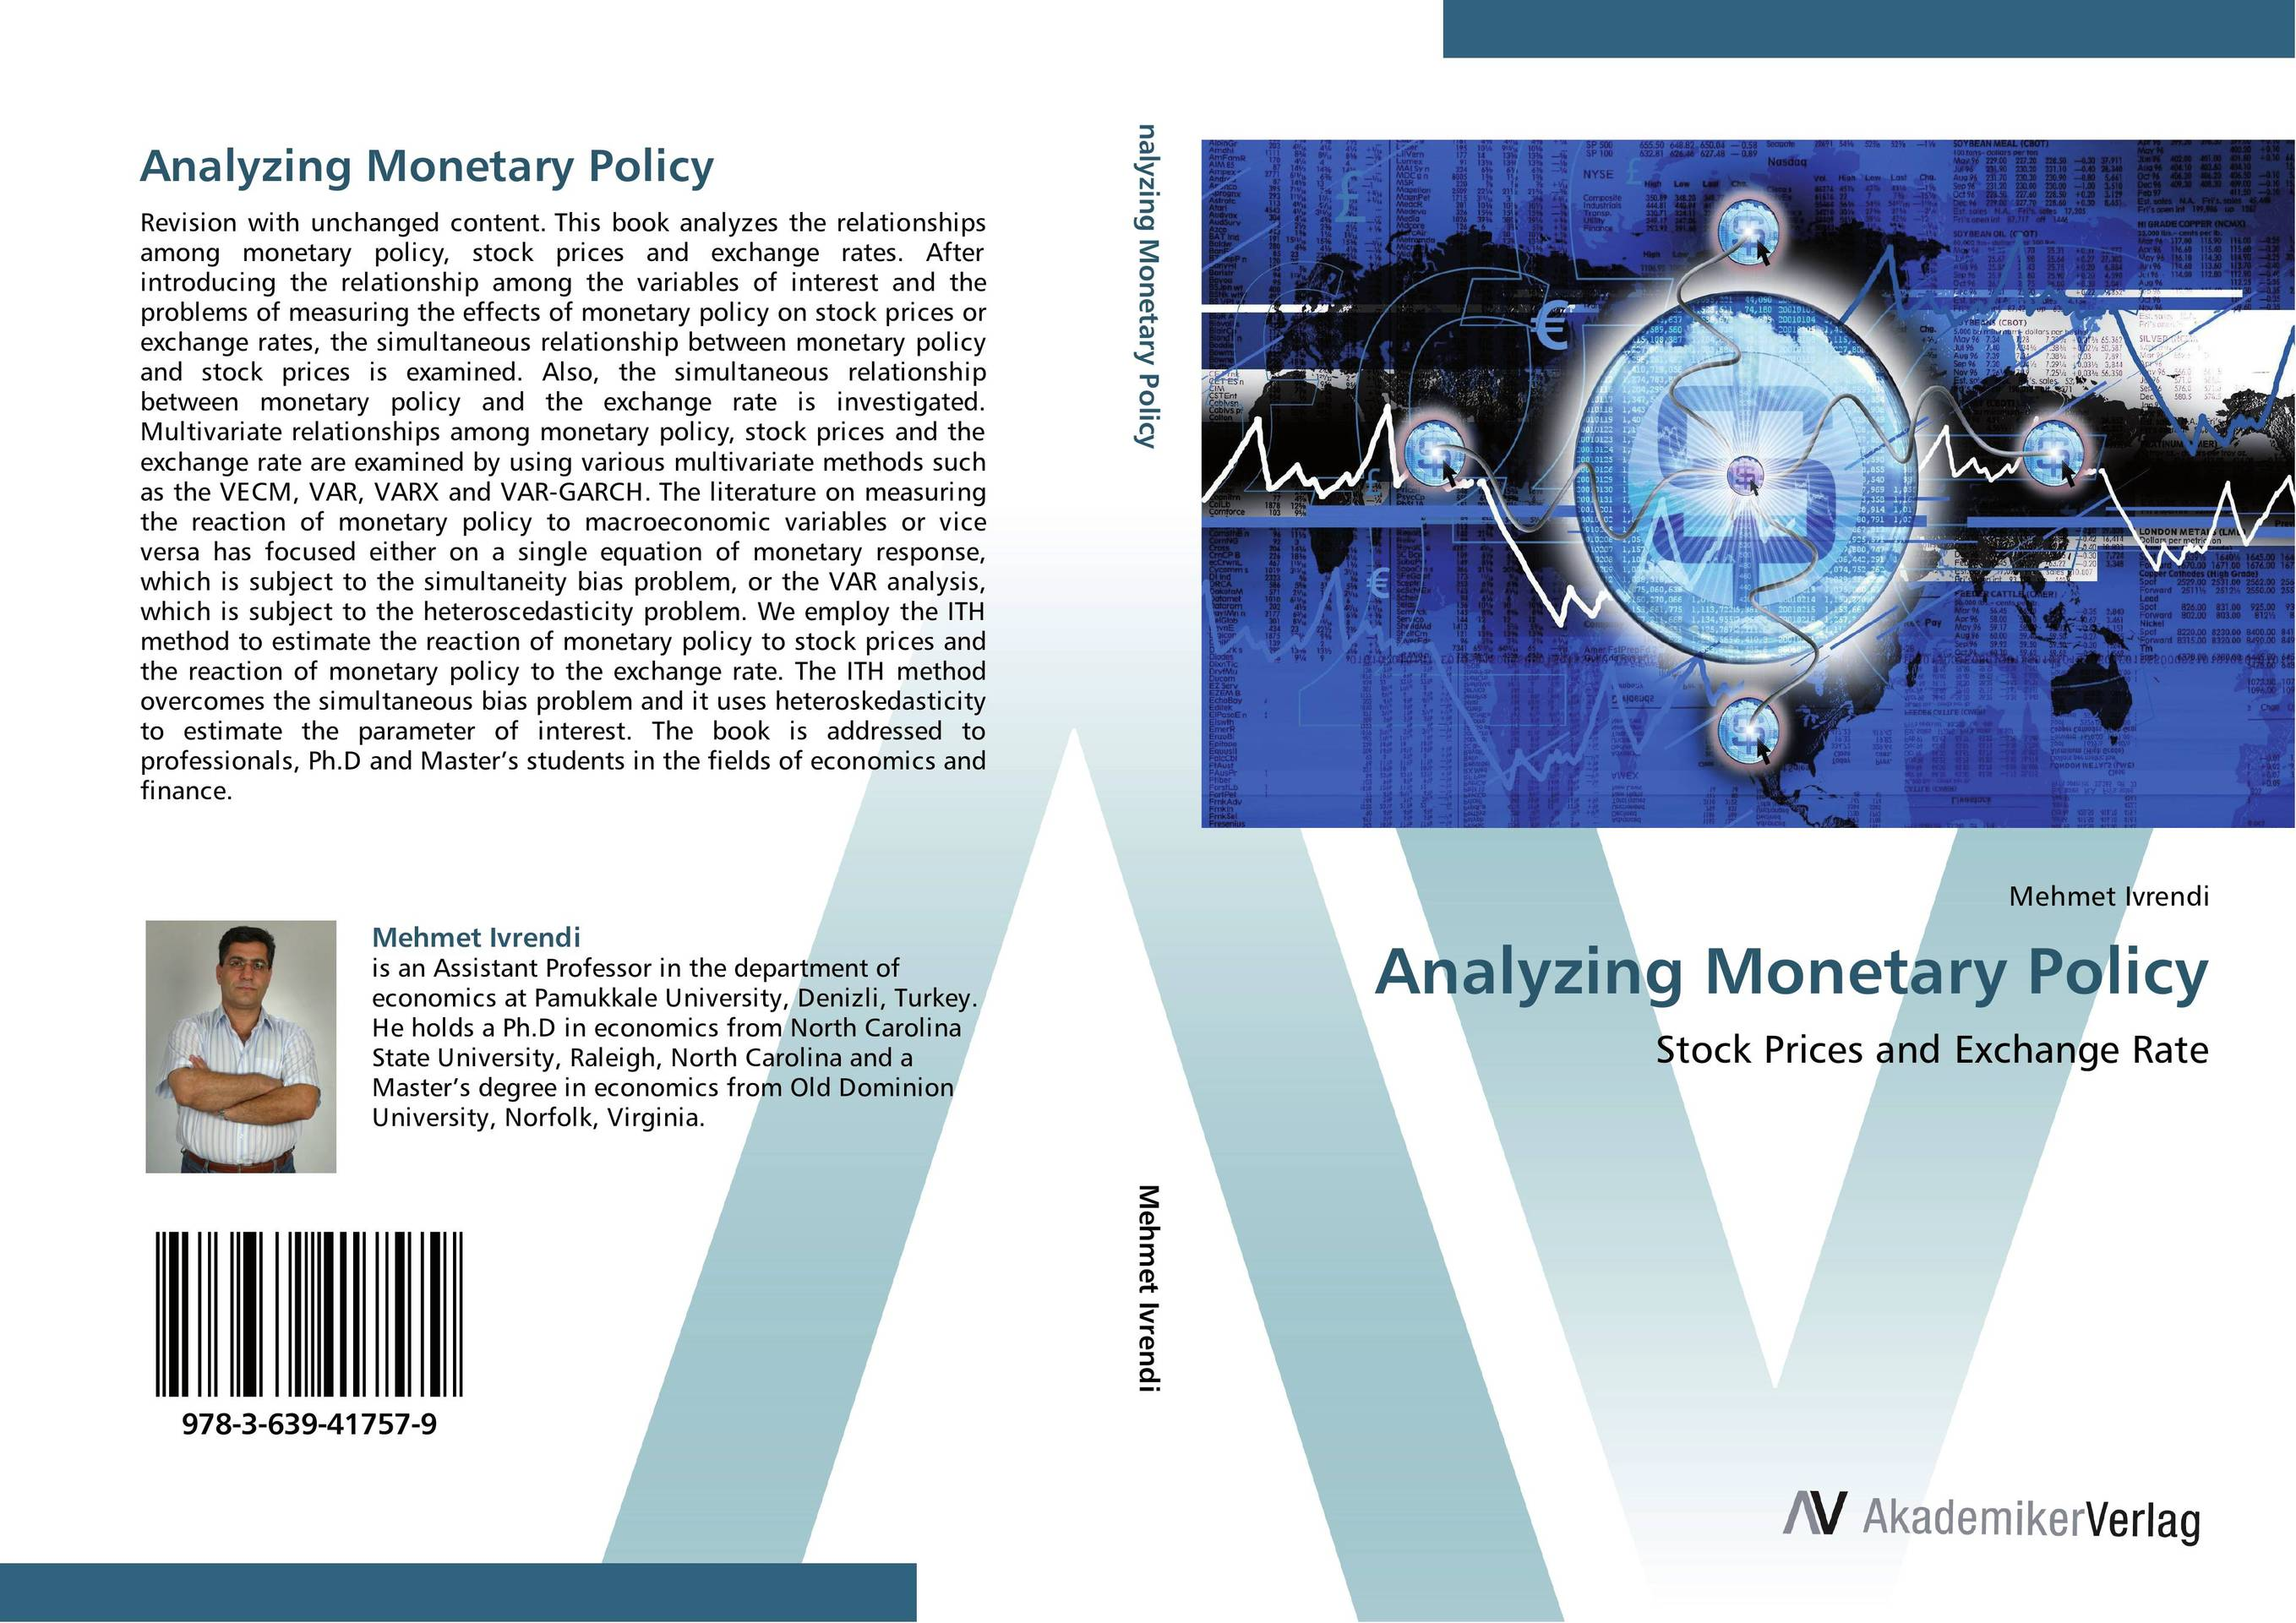 Analyzing Monetary Policy point systems migration policy and international students flow